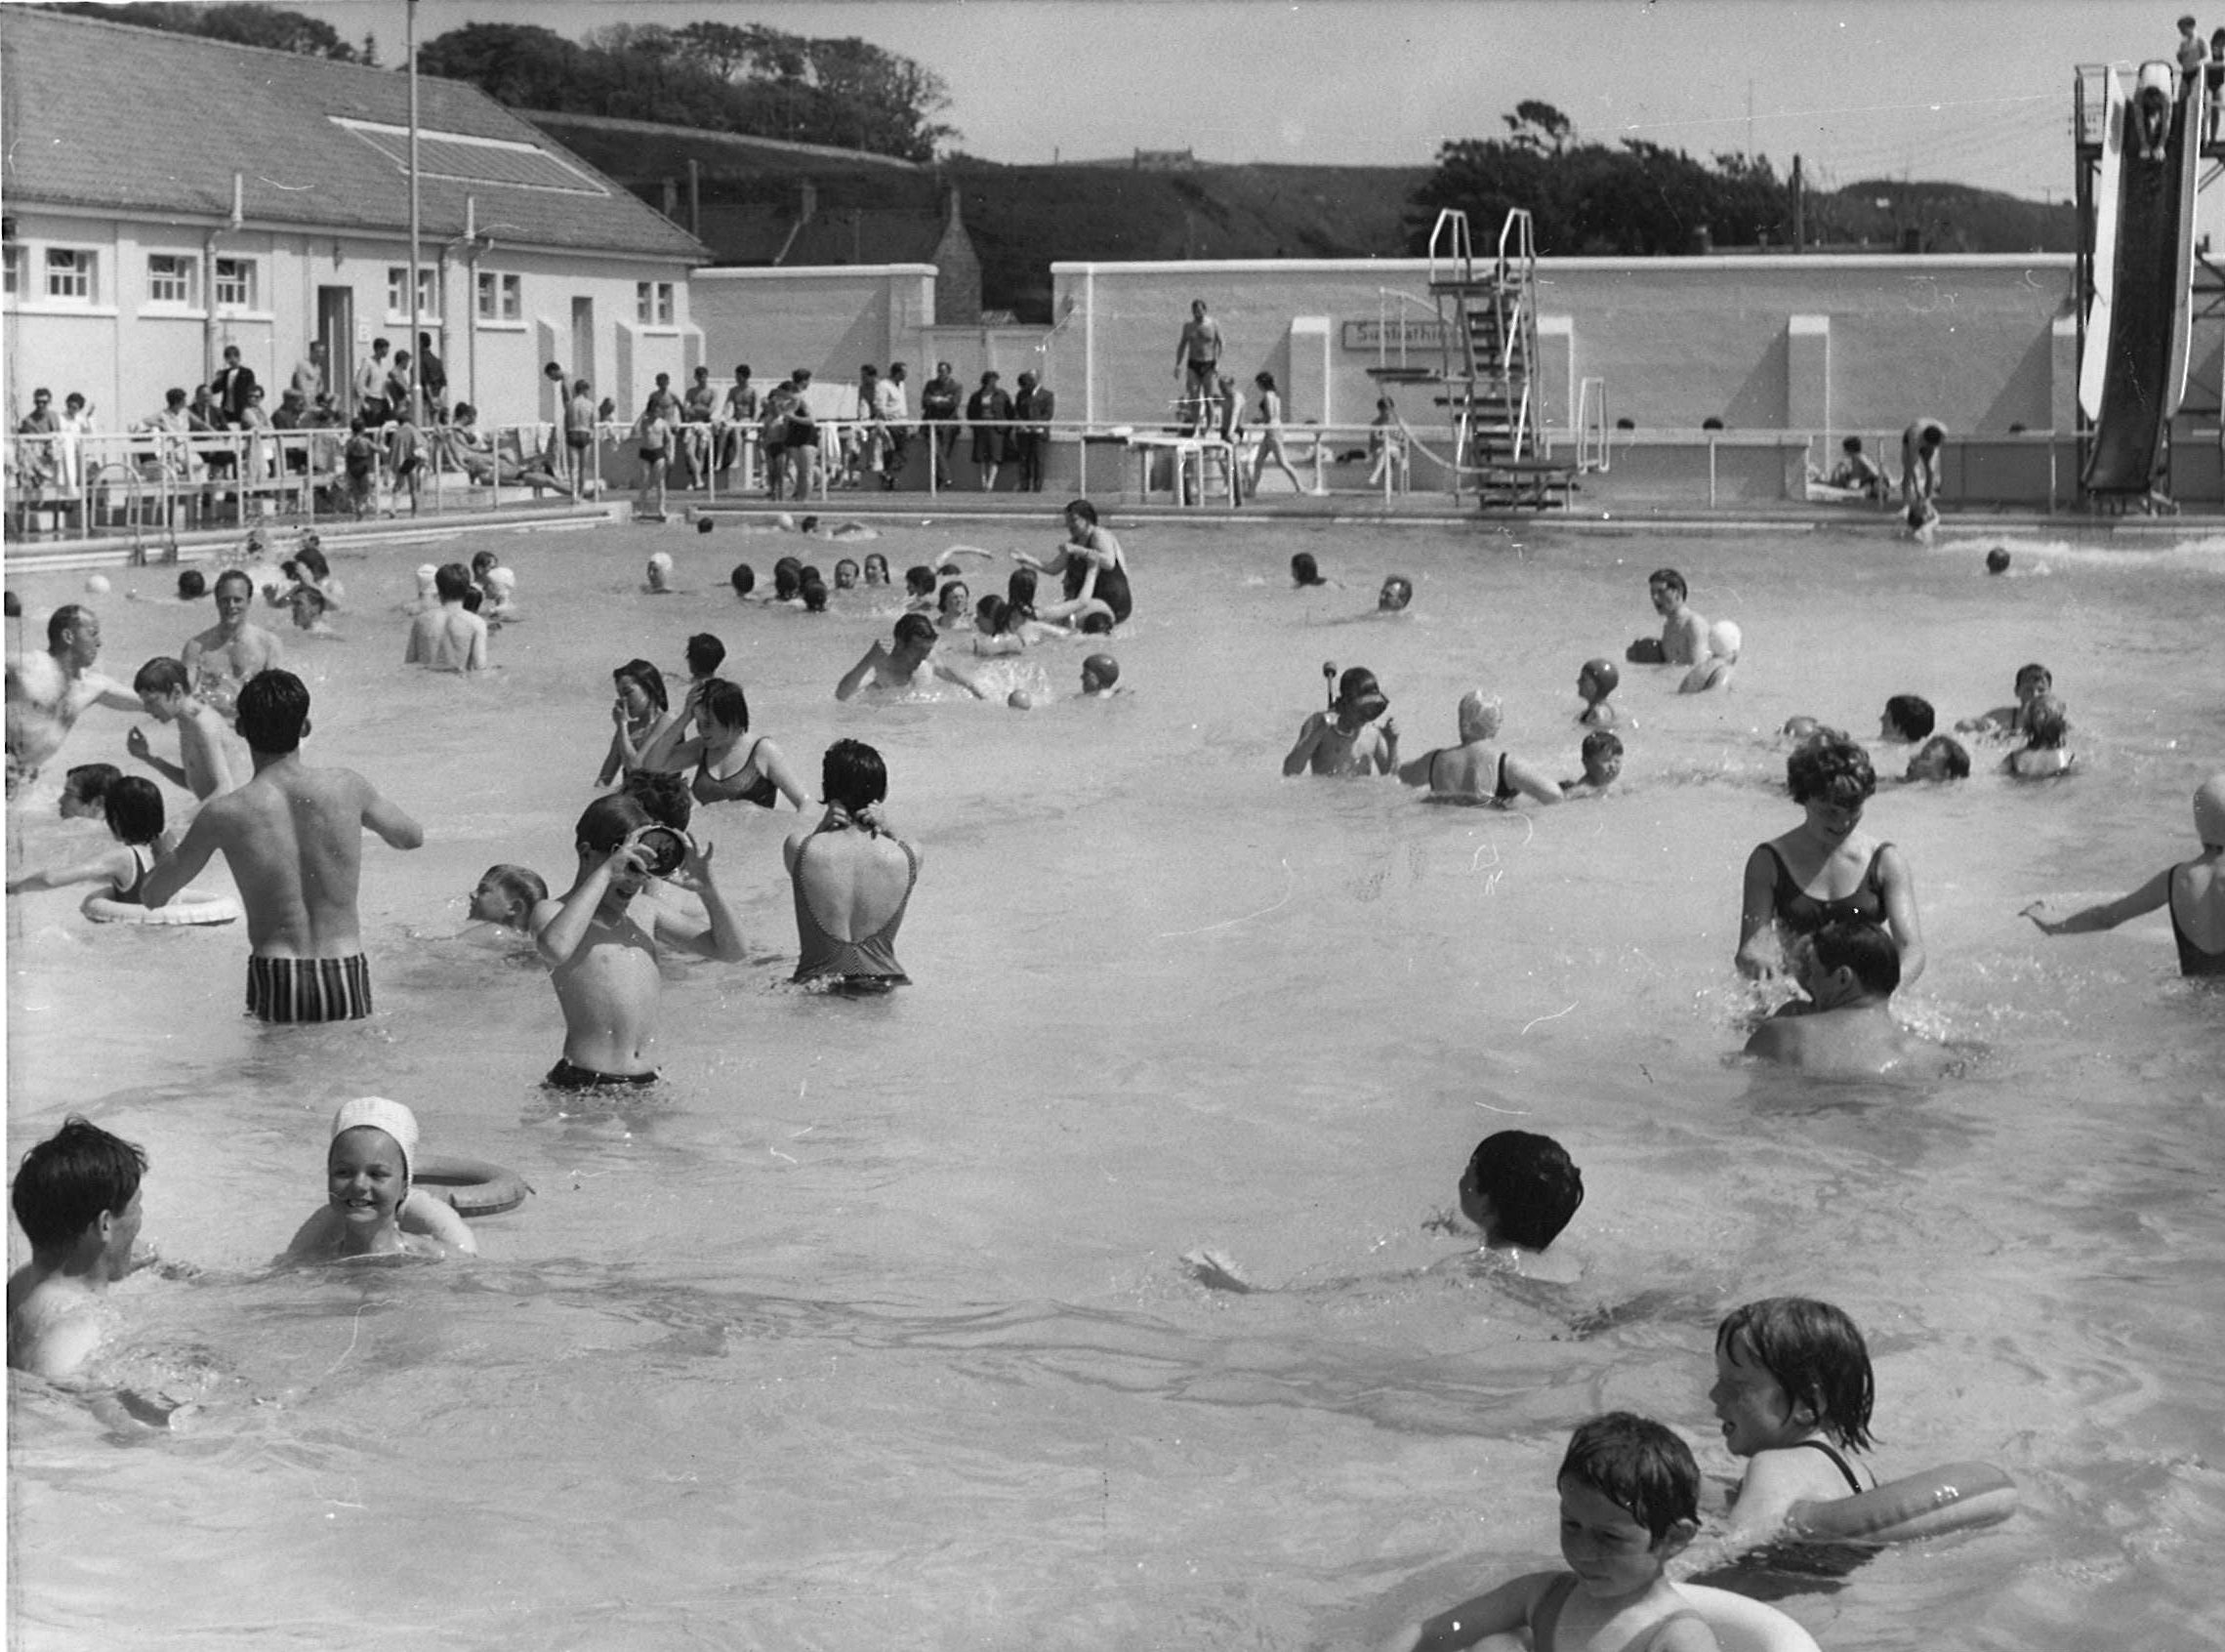 The pool in 1974